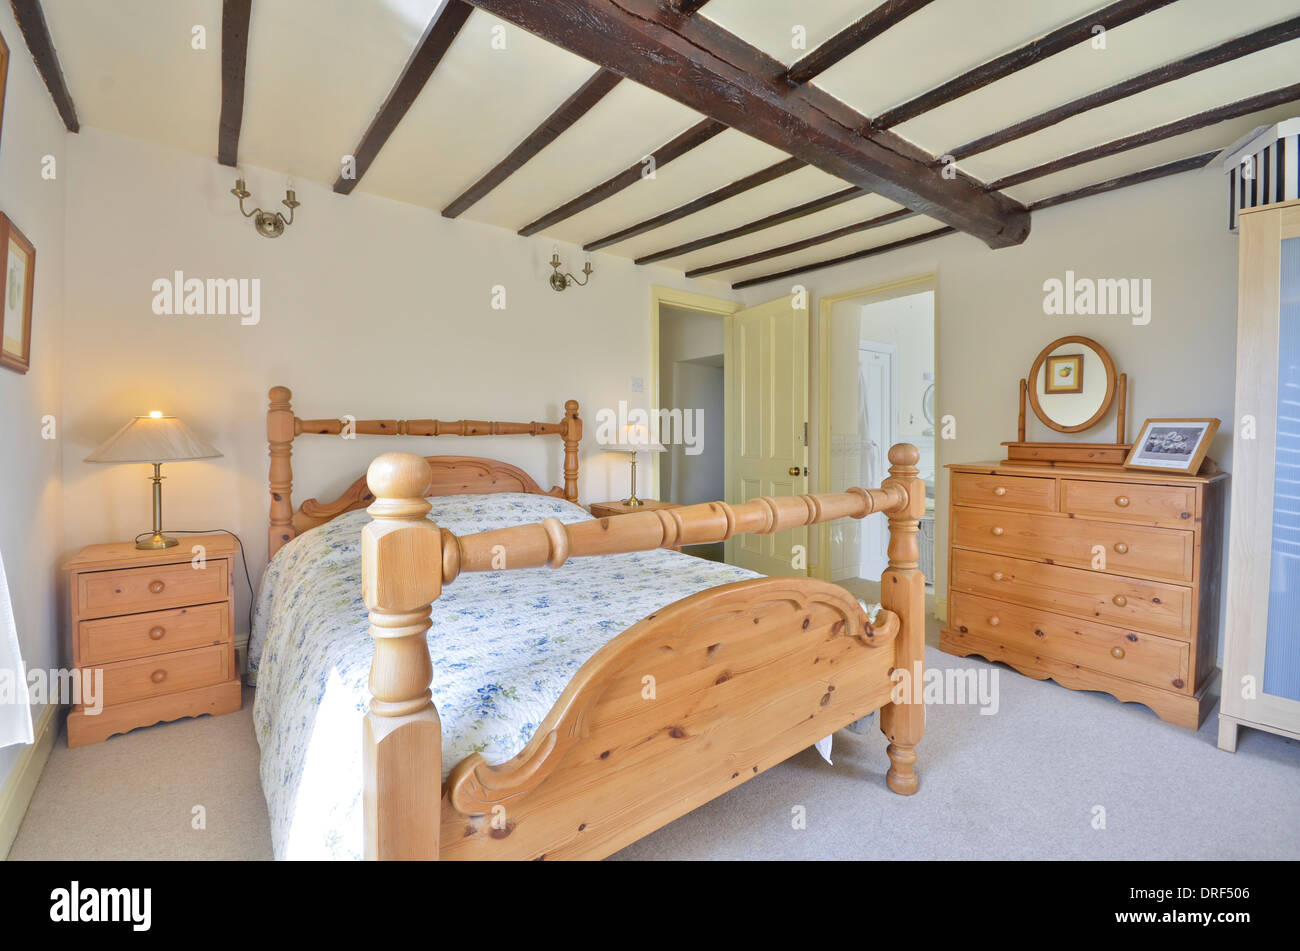 Spare bedroom with pine framed double bed and pine furniture Stock Photo